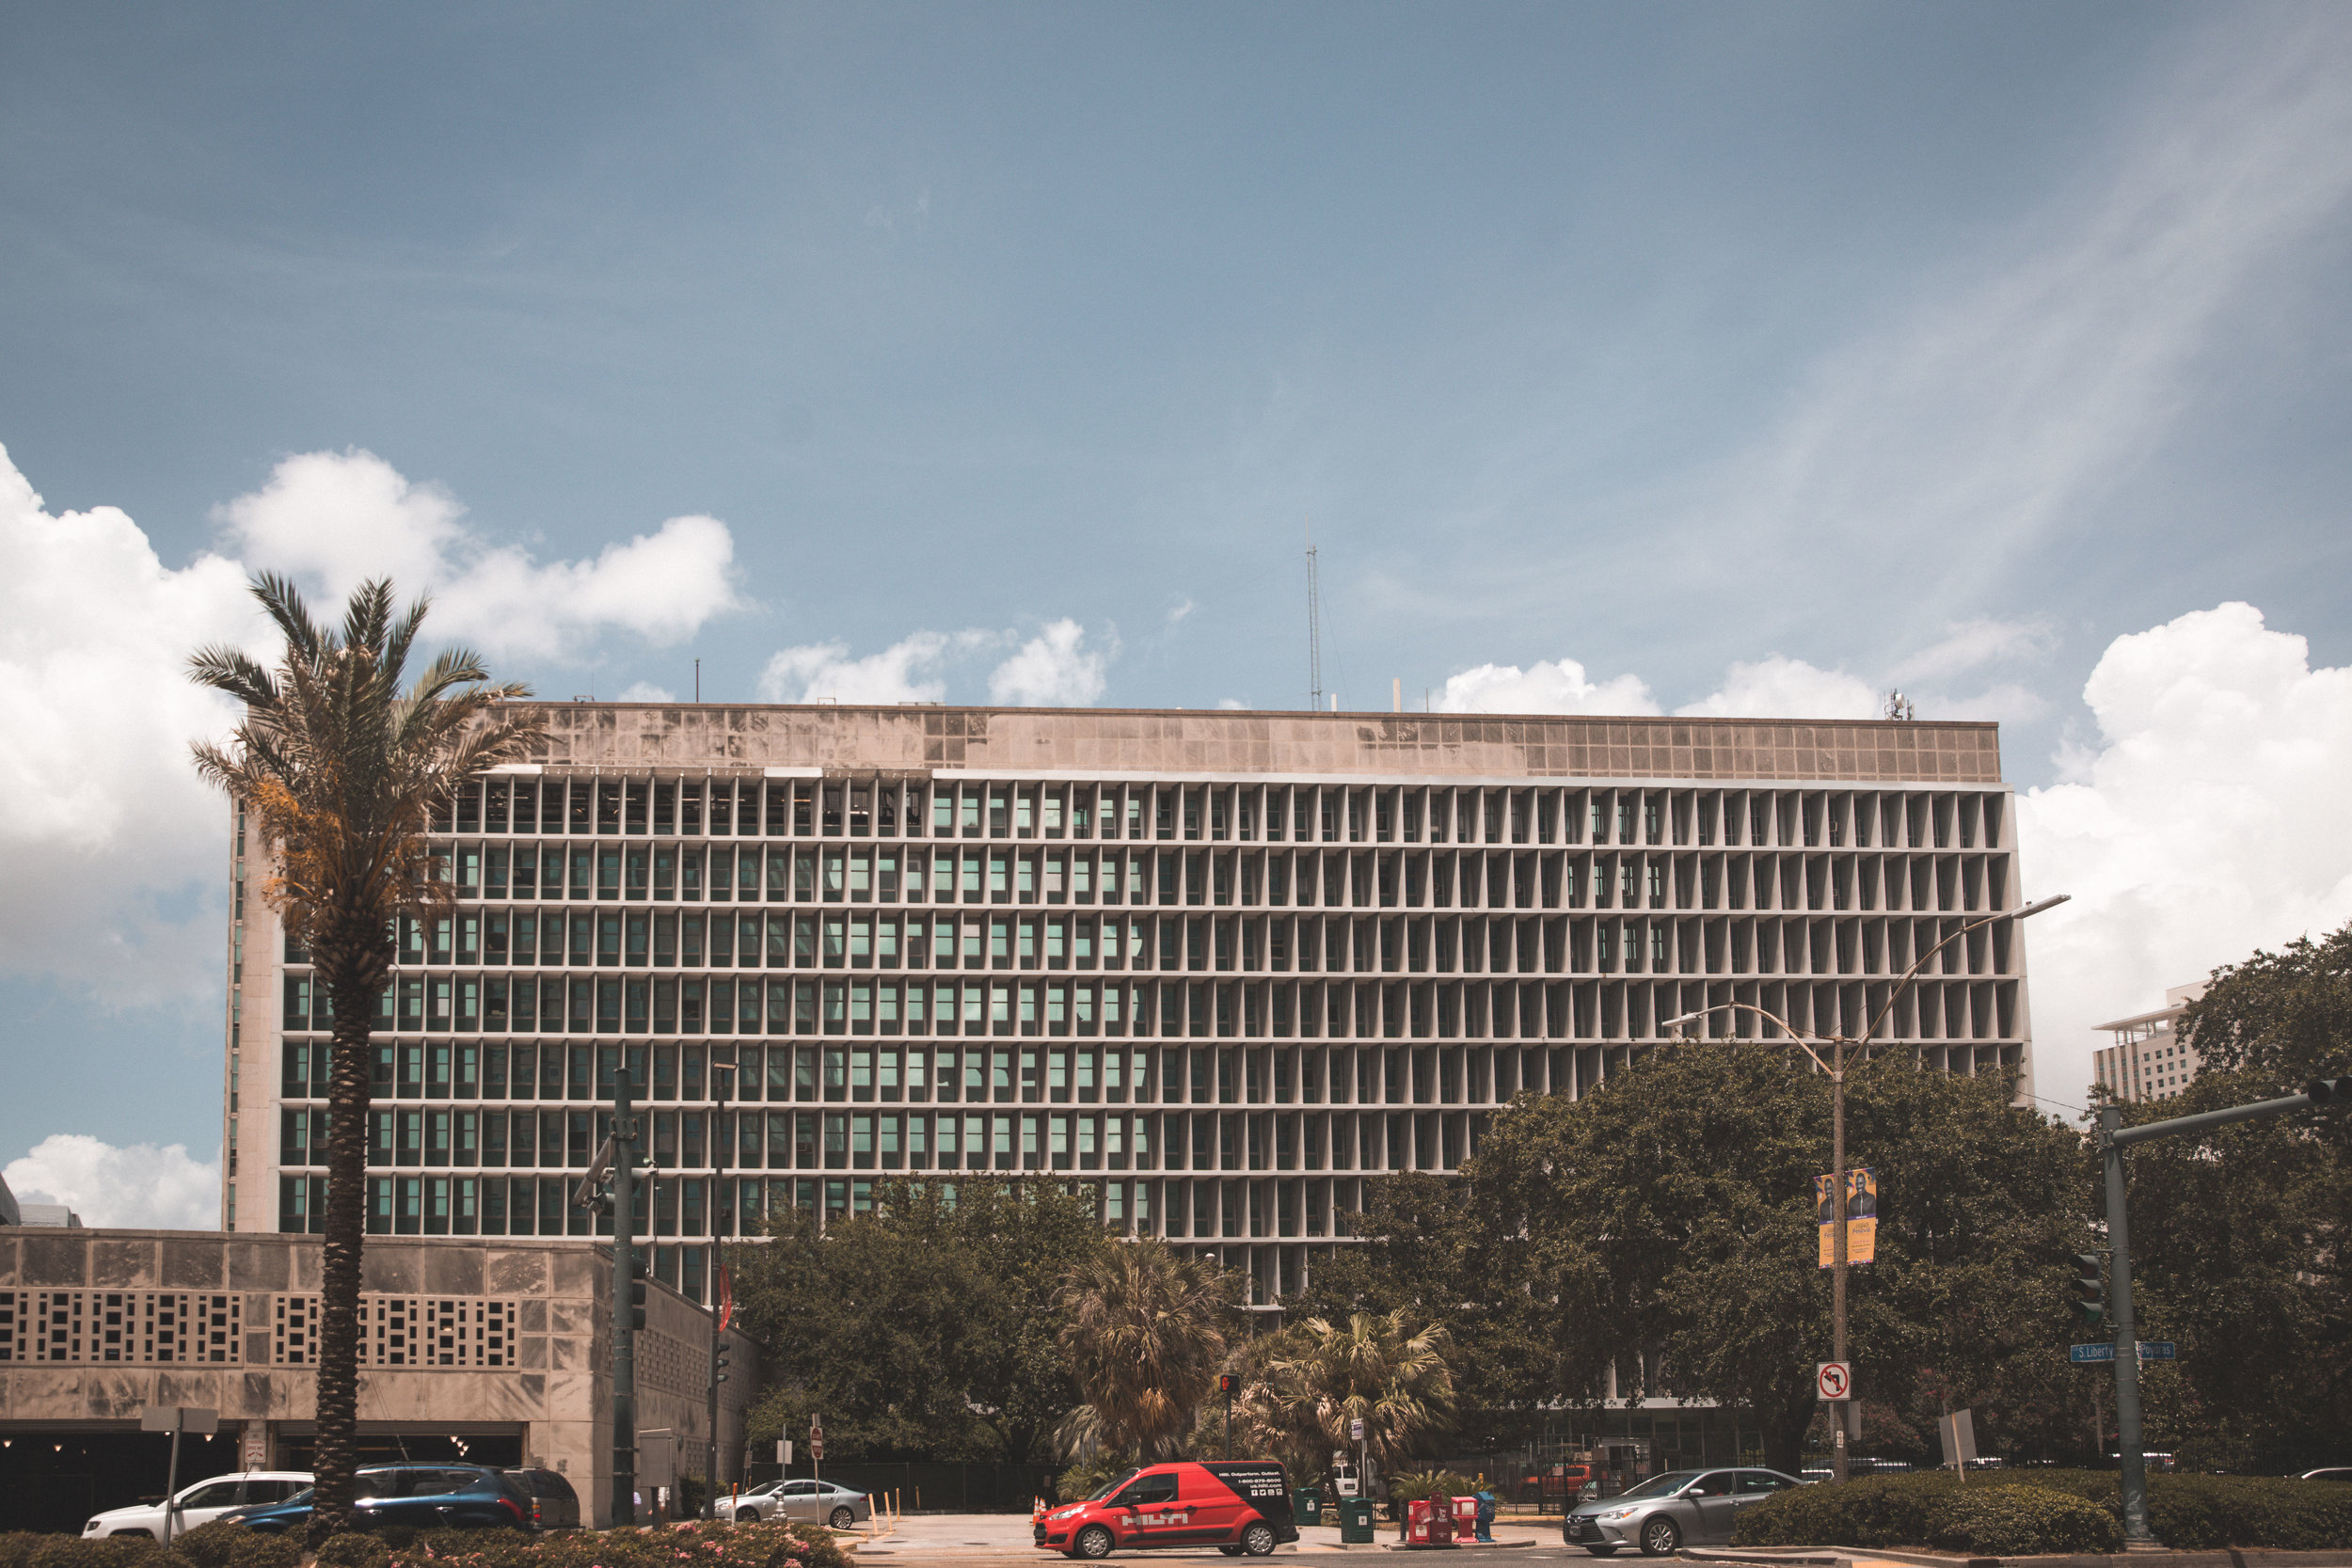 New Orleans_Miel Brewery_July 2018_City Hall from Poydras